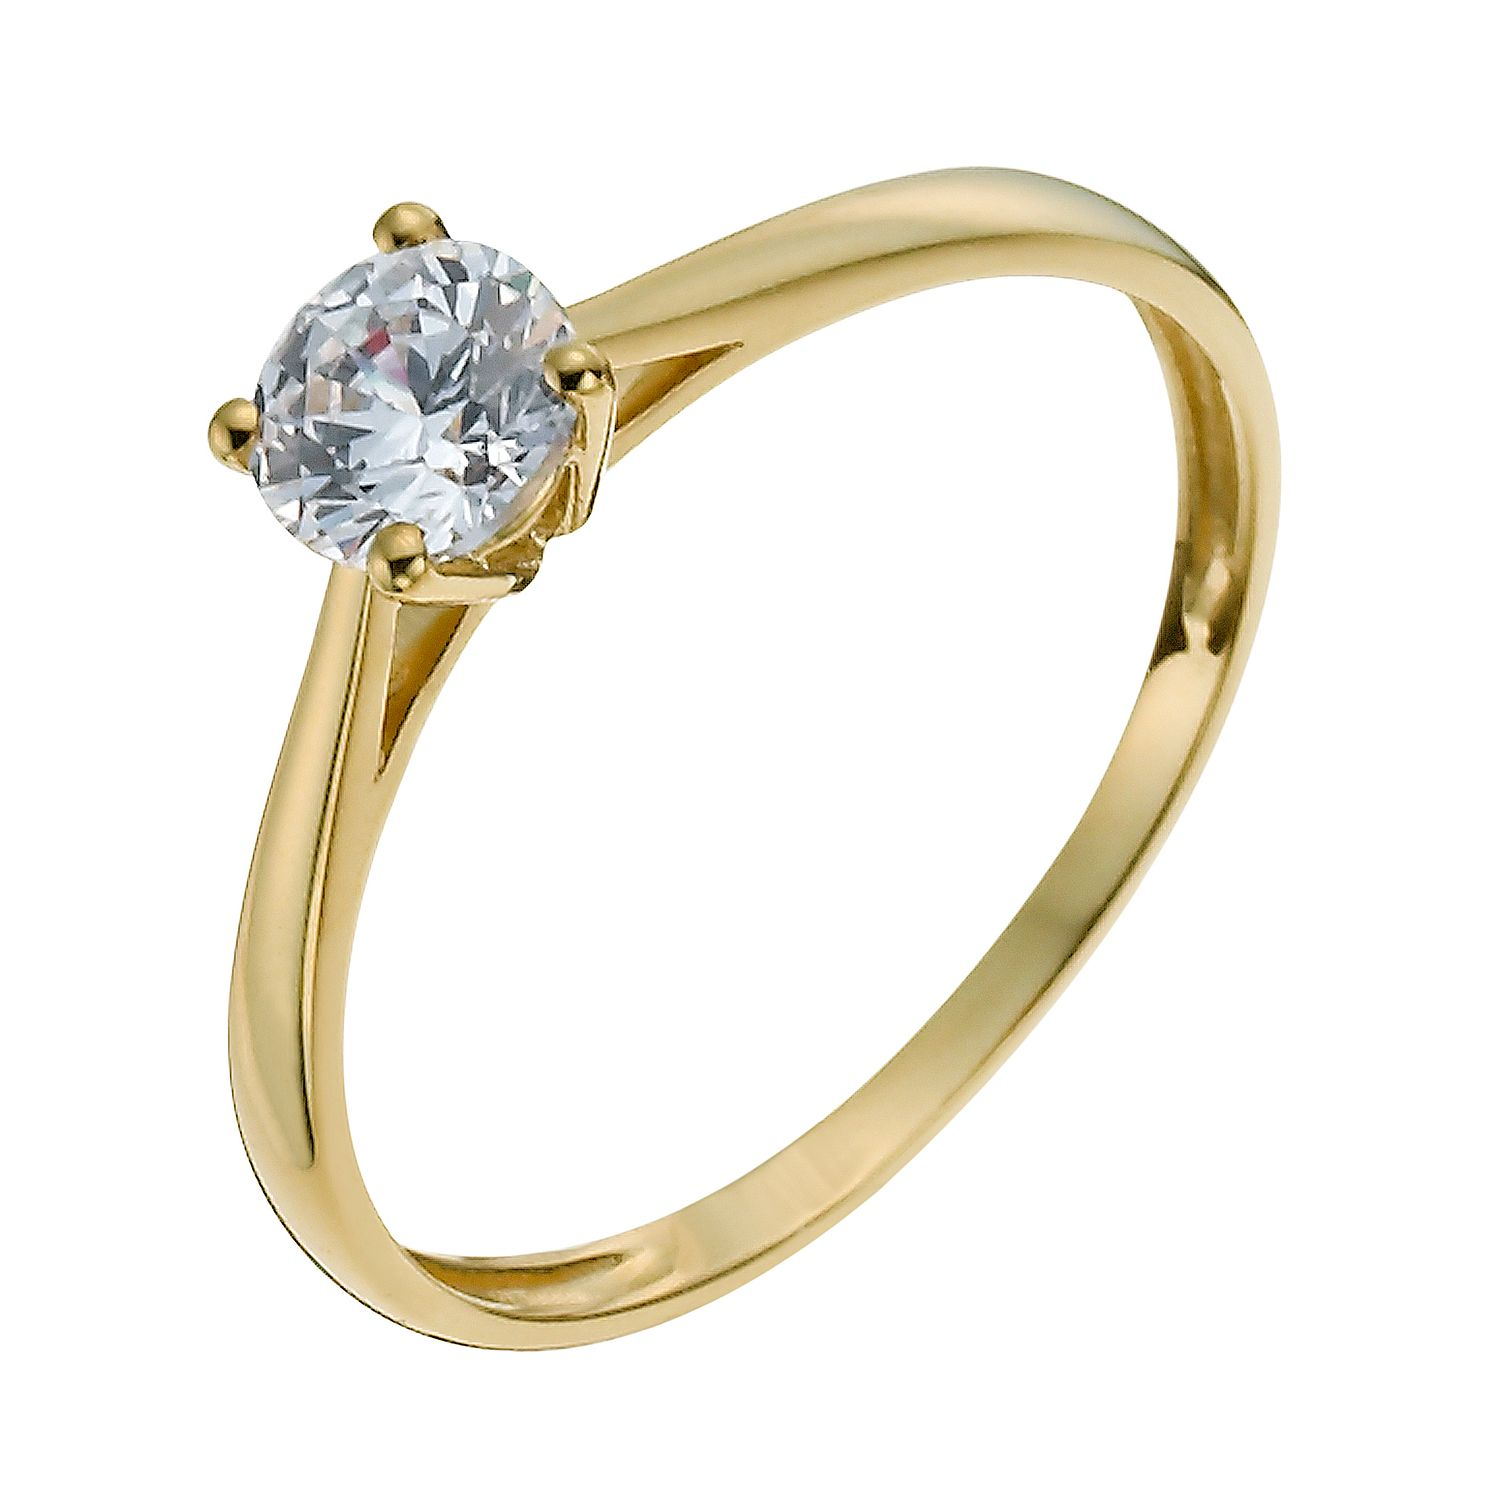 gold jewellery rings of c tree rose silver ring qvc clogau sterling solitaire plain uk n life